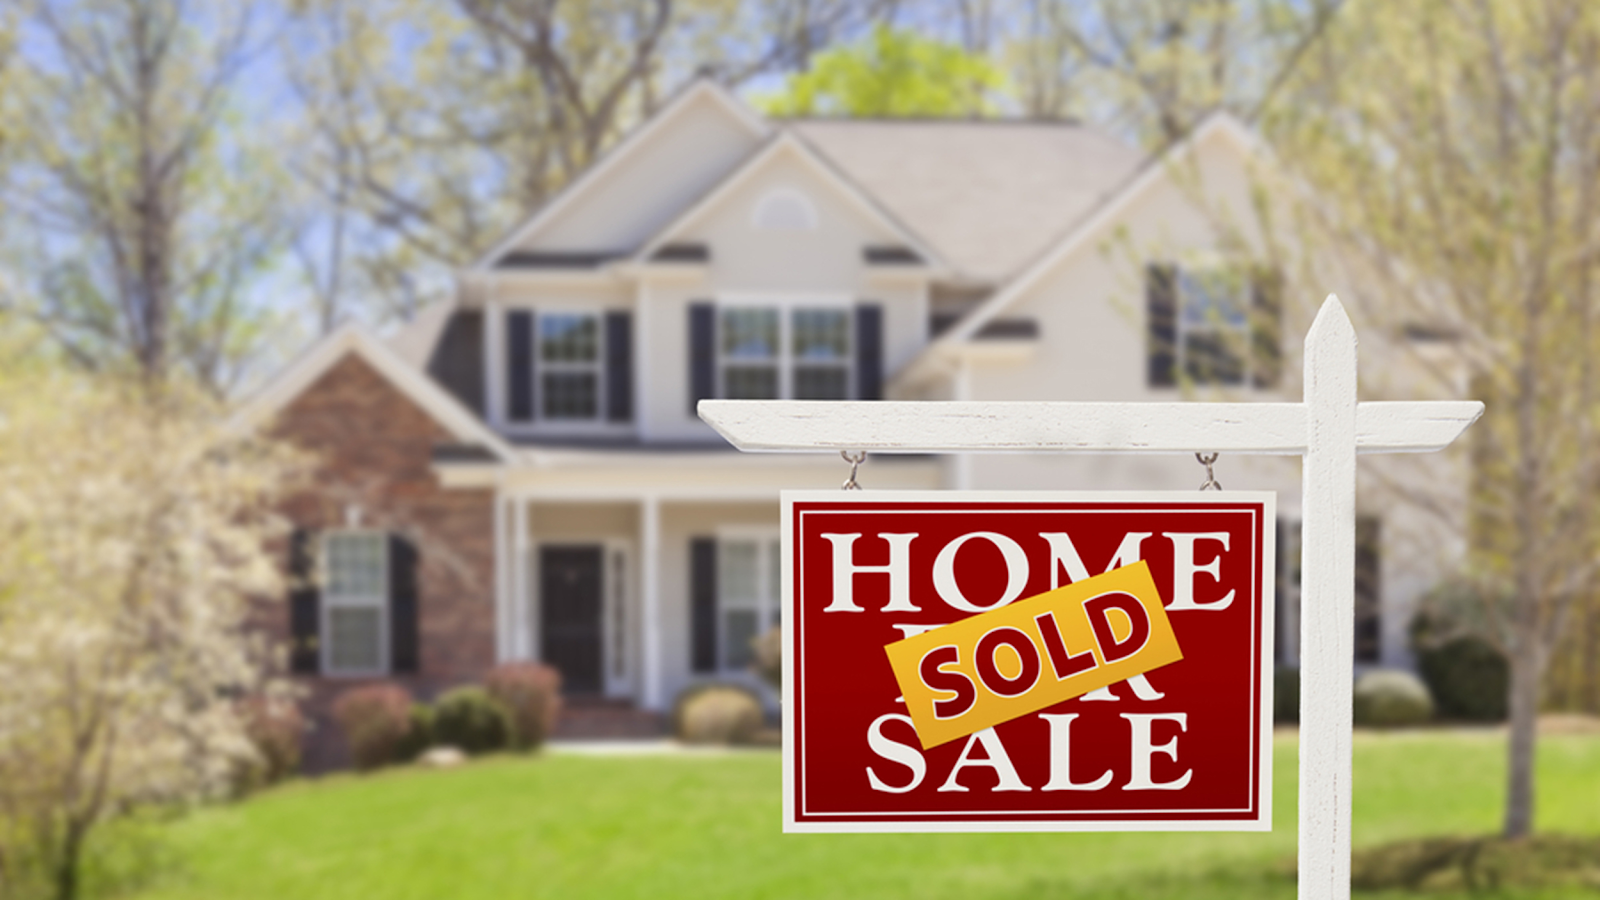 Looking to Buy or Sell a Home this Year? Here Are 6 Things that Can Go Wrong with Real Estate Sales